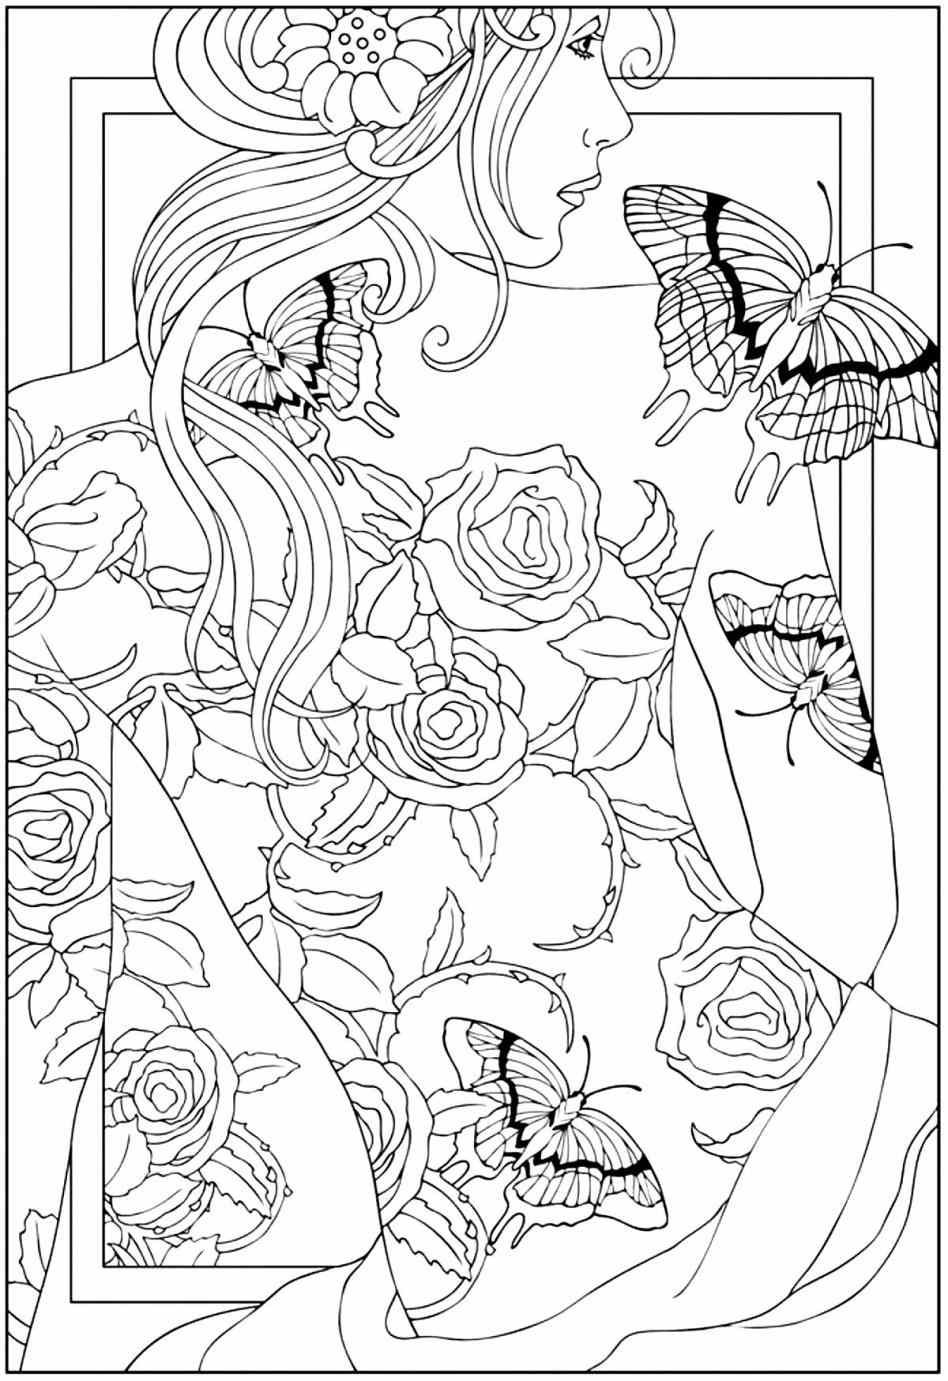 Detailed Landscape Coloring Pages For Adults 20